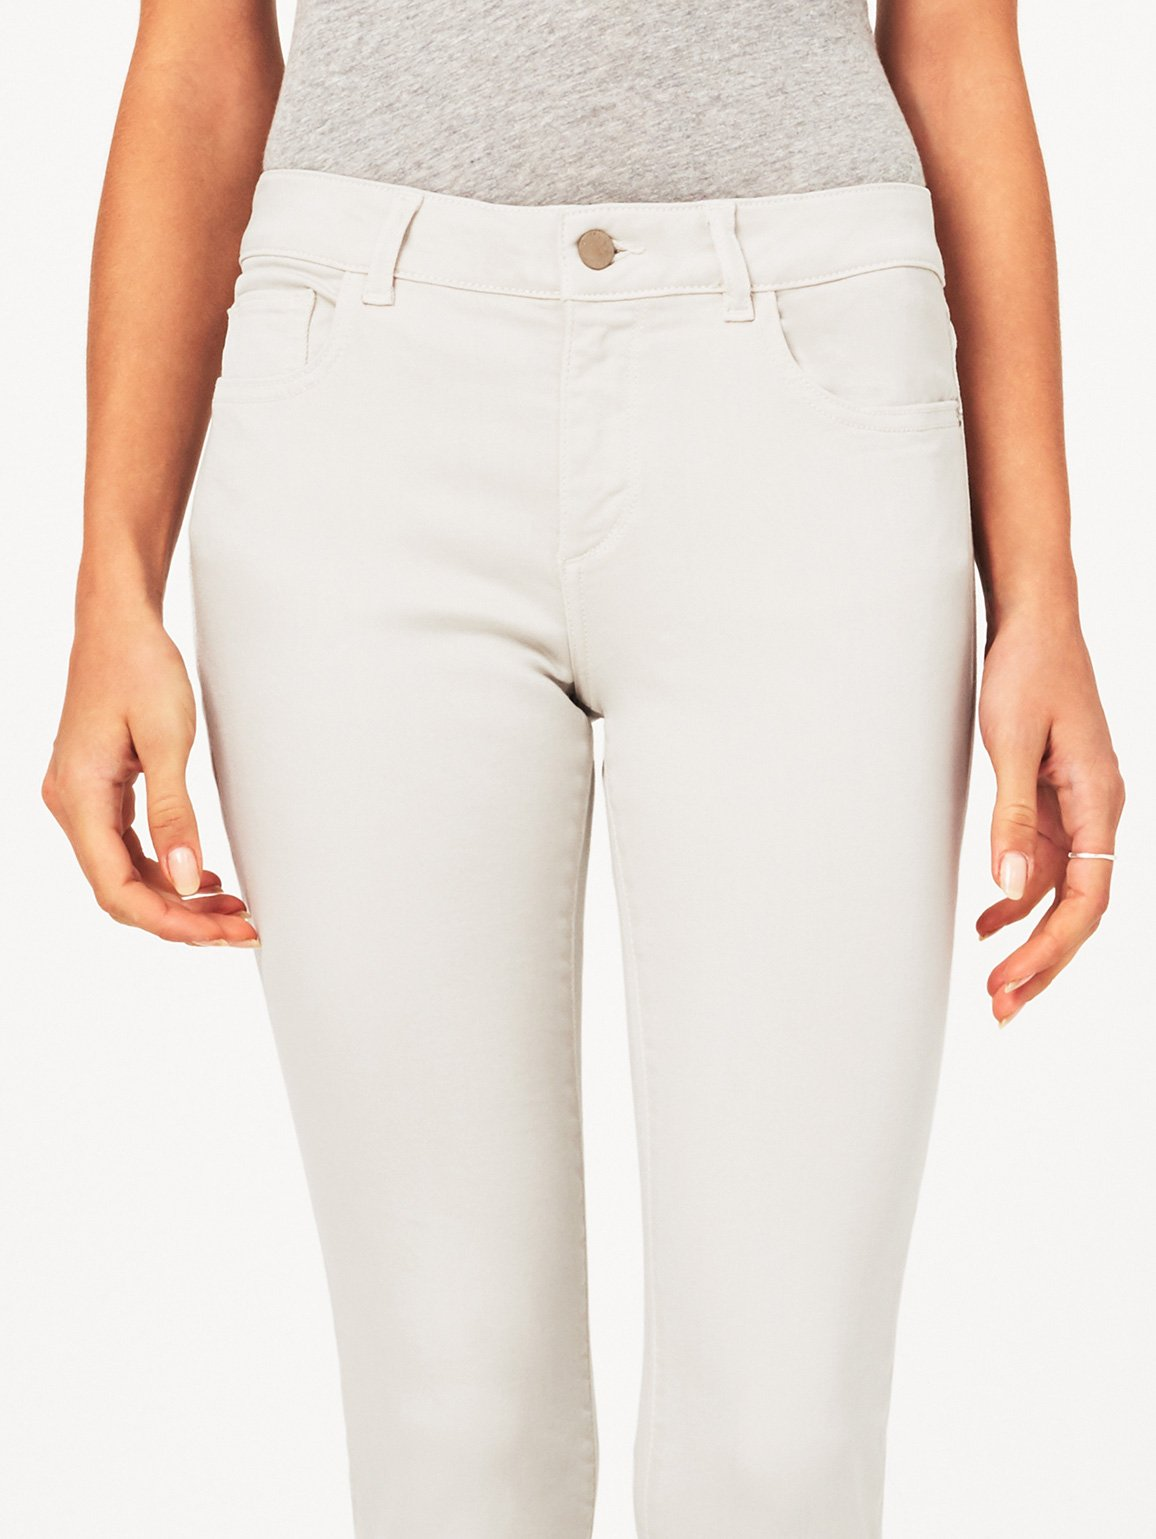 Margaux Mid Rise Ankle Skinny | Bone DL 1961 Denim